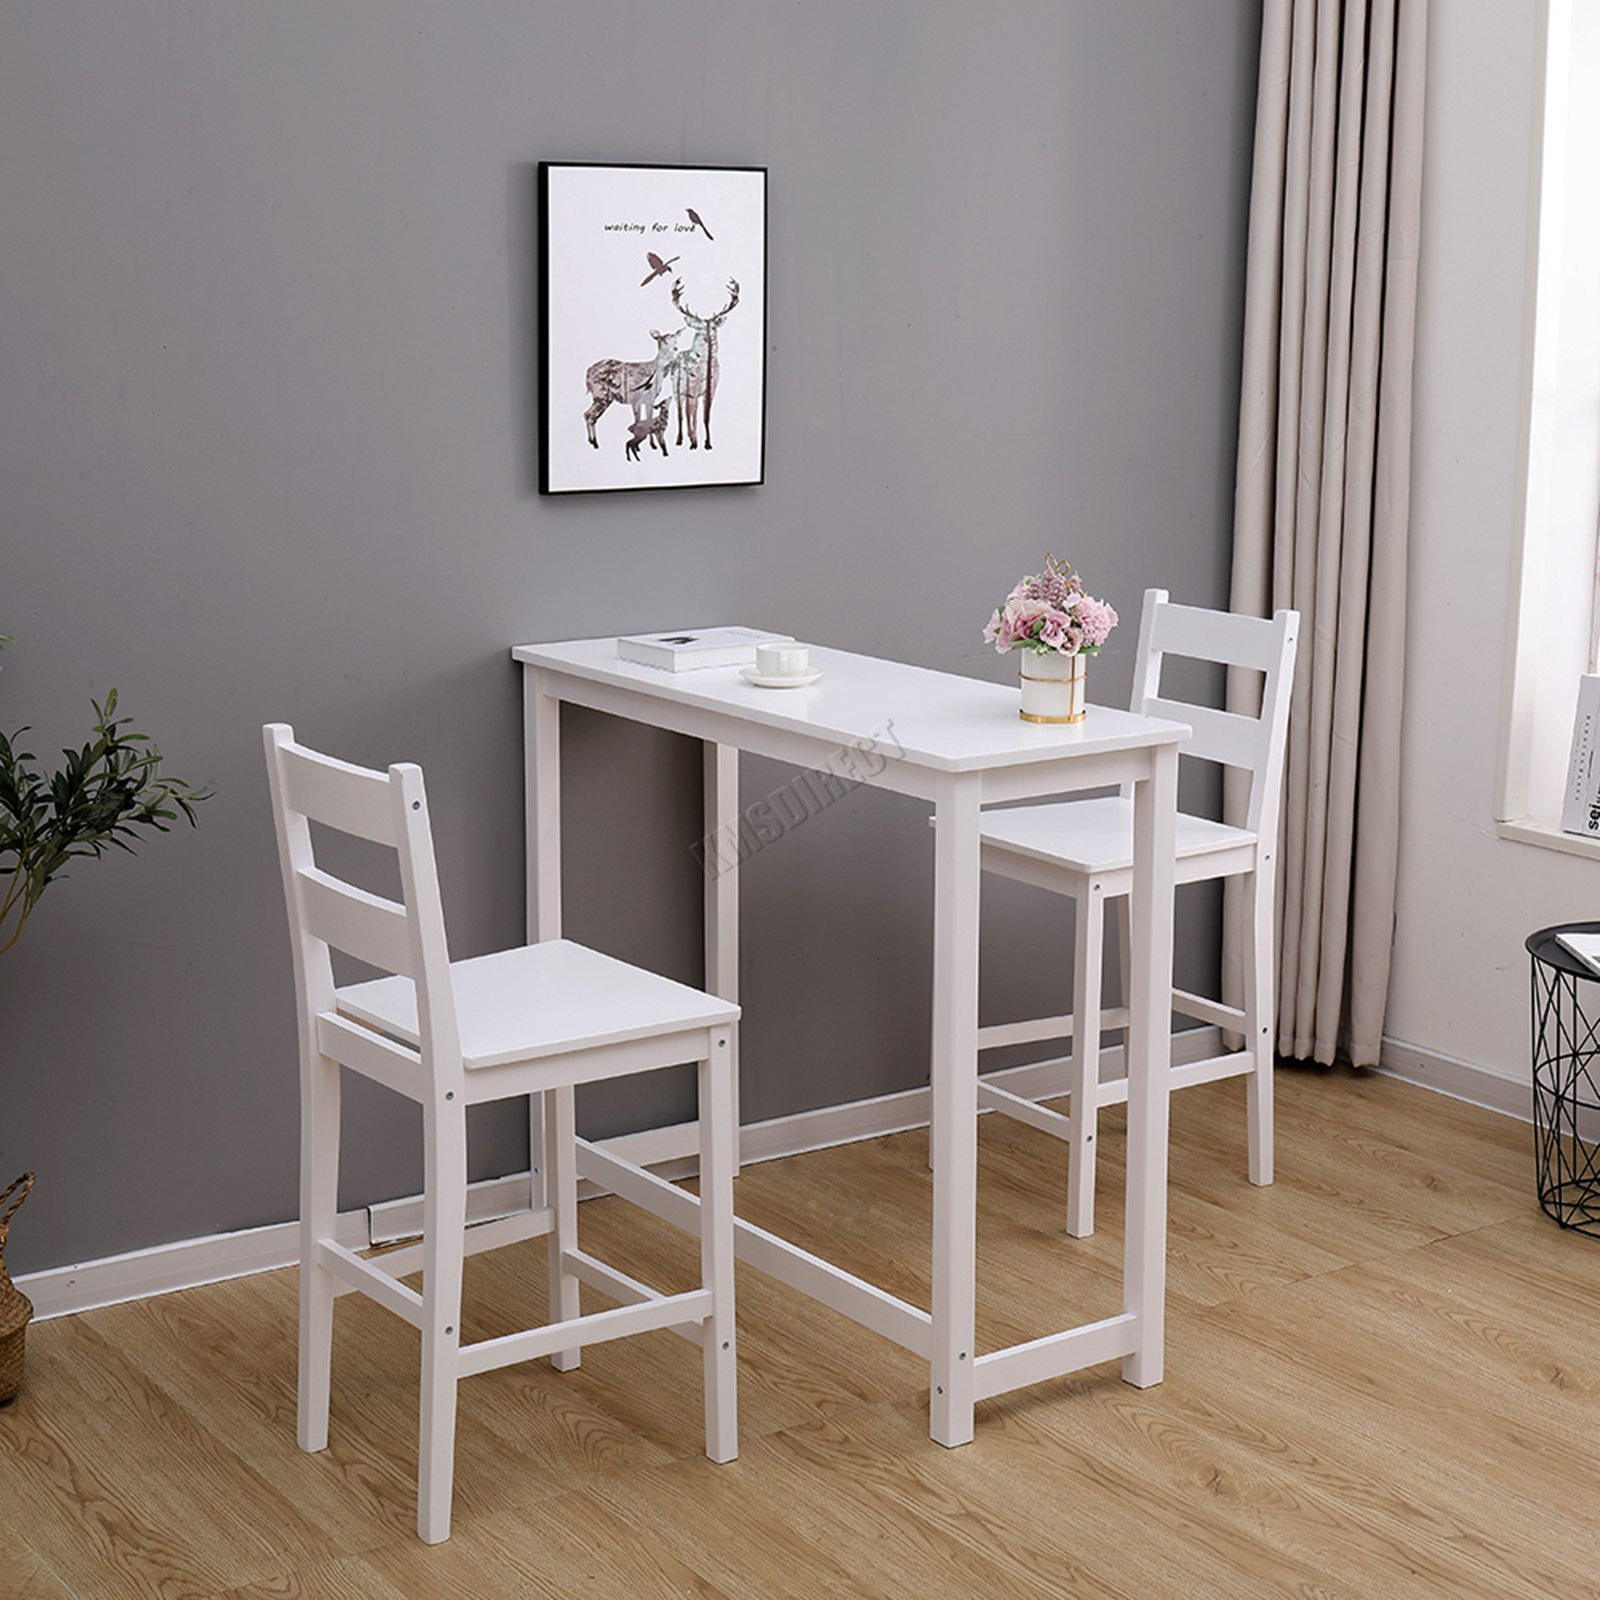 Details zu WestWood Breakfast Bar Table 9 X Stools Set Solid Pine Wood  Kitchen Dining Chair